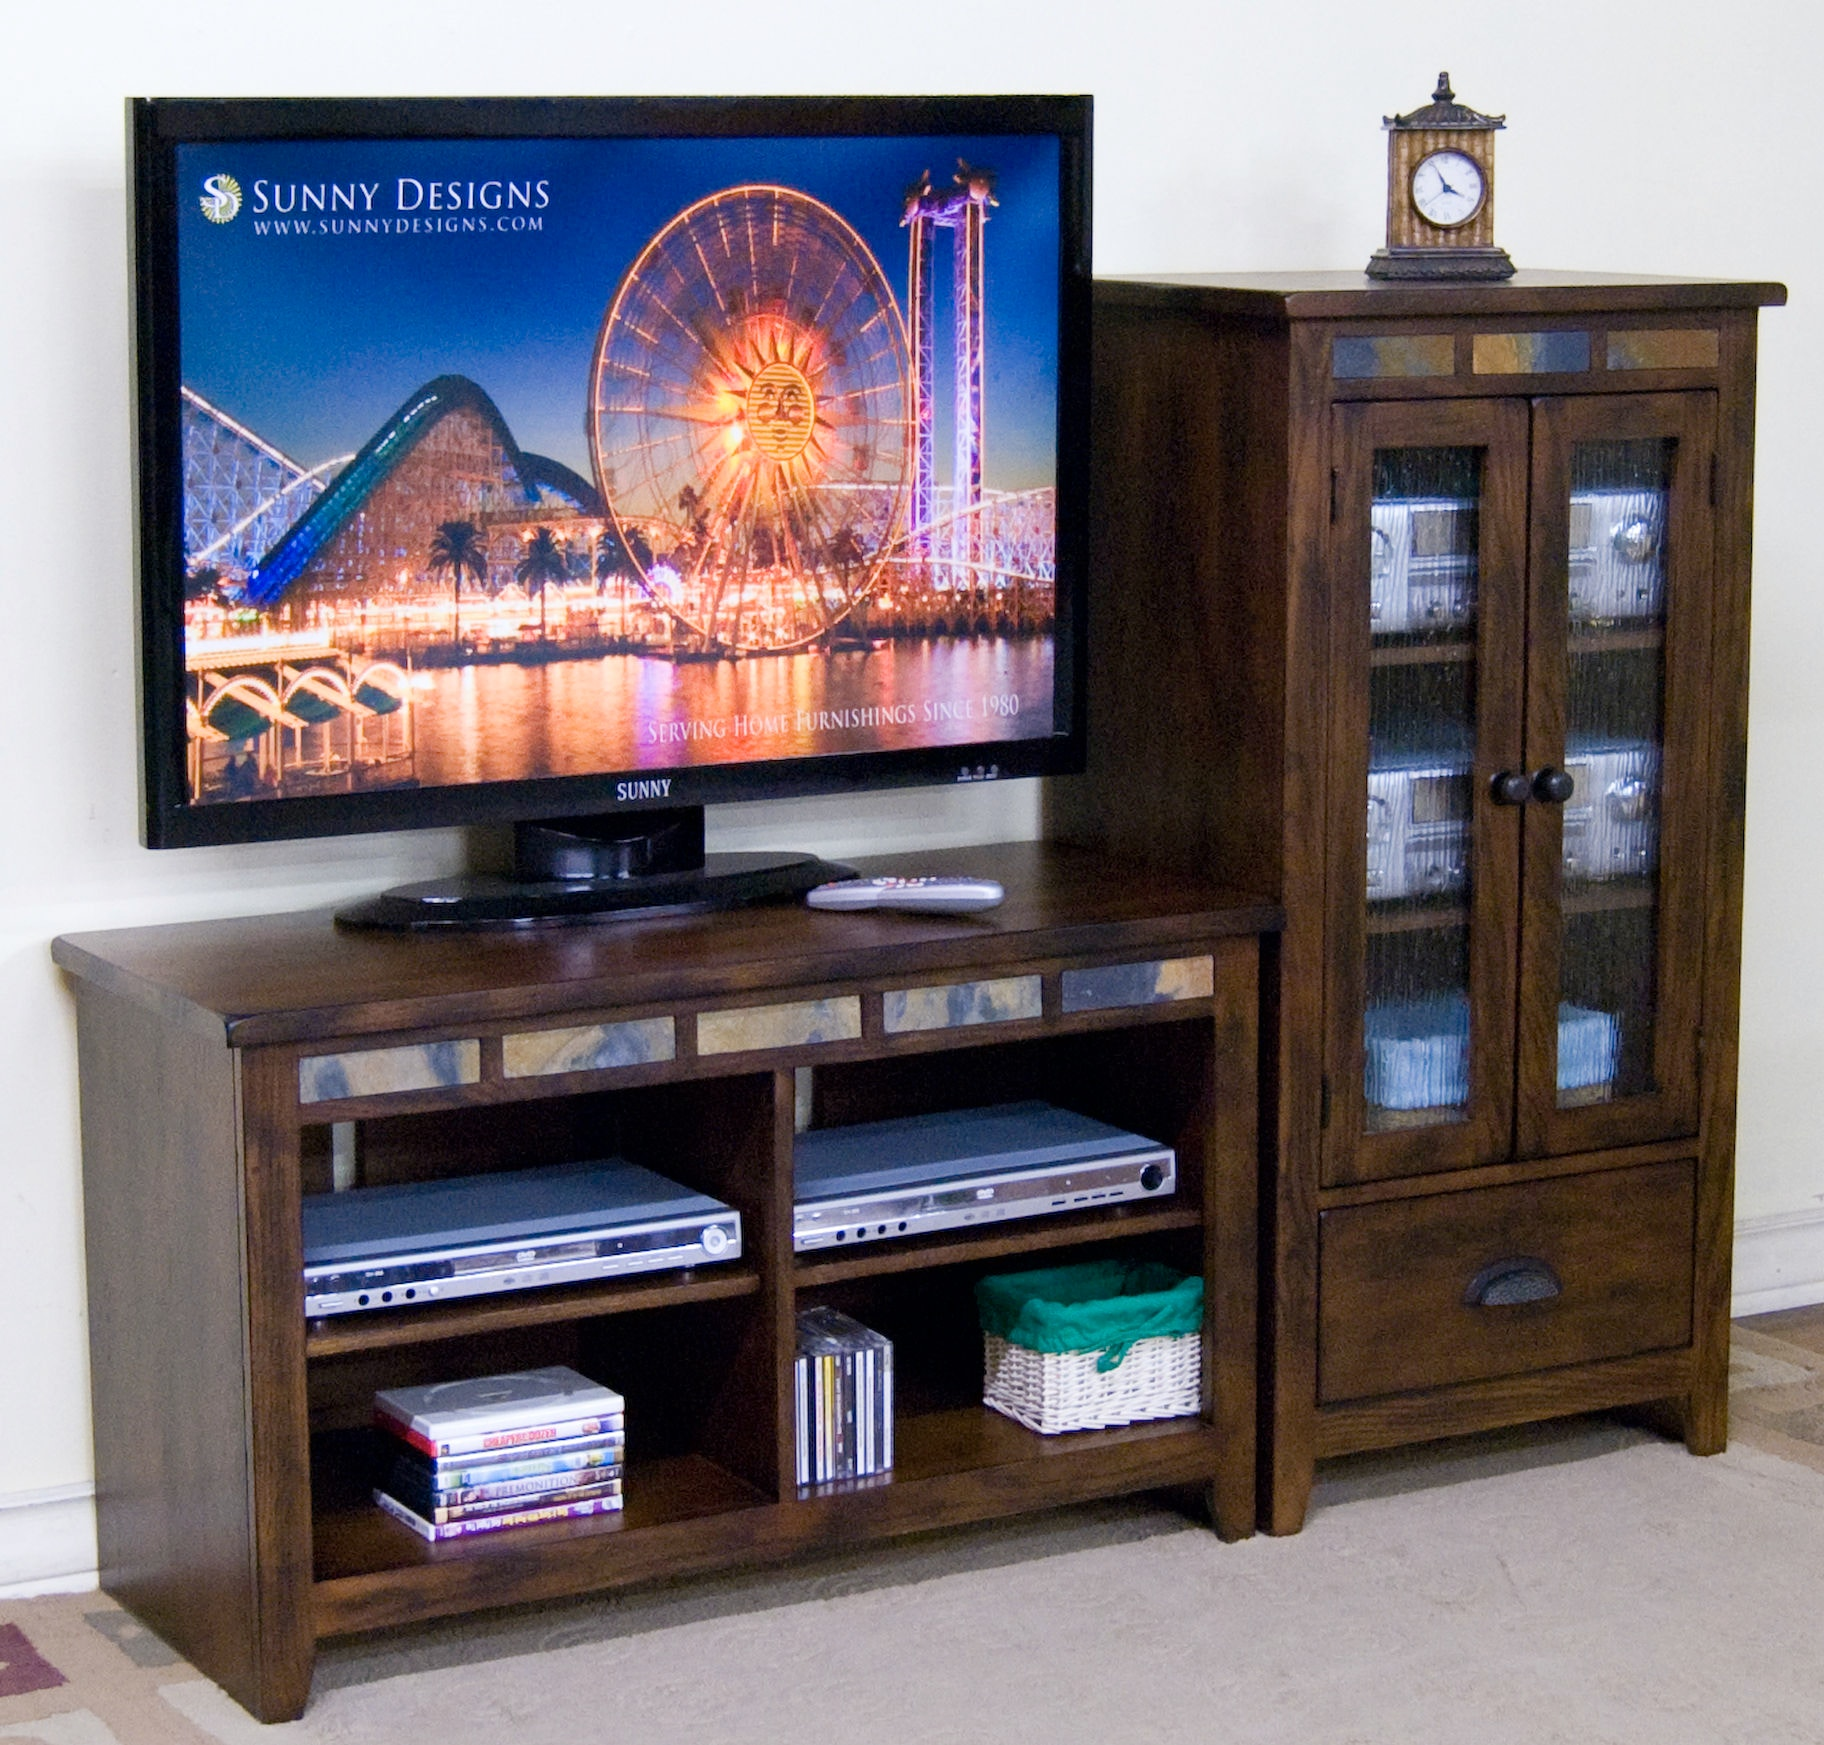 Sunny Designs Home Entertainment Oxford 42 Inch